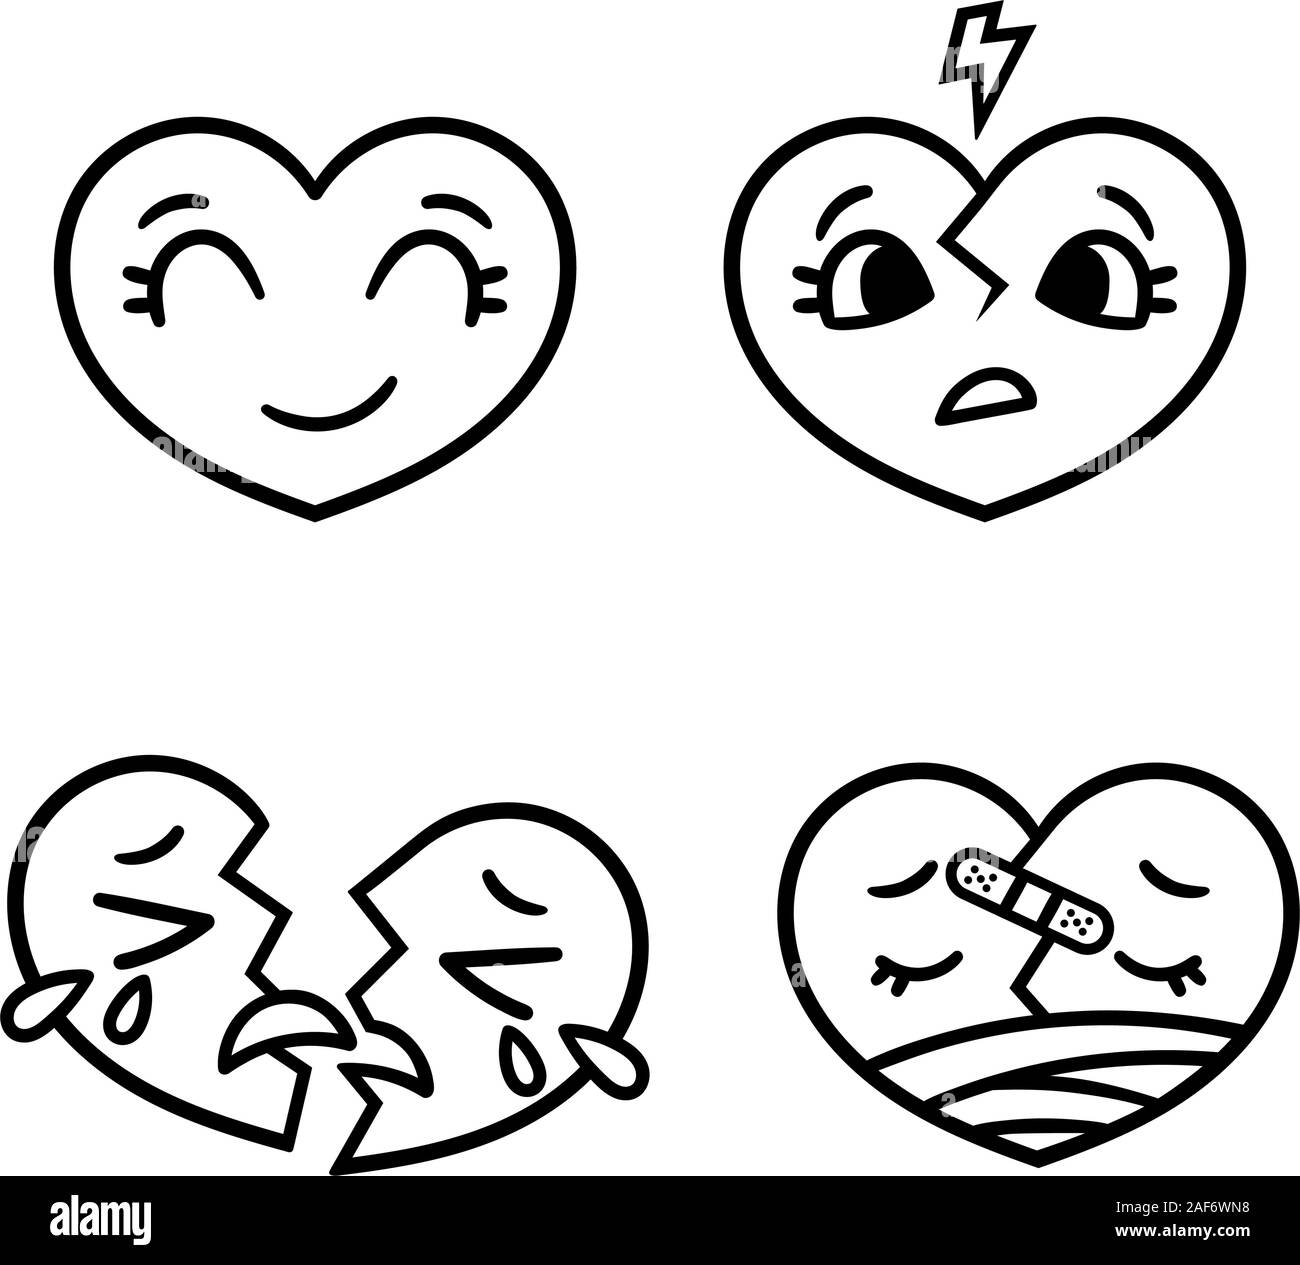 cute cartoon emoticon hearts set happy sad broken doodle style vector illustration isolated on white background heart collection emoticons emo 2AF6WN8